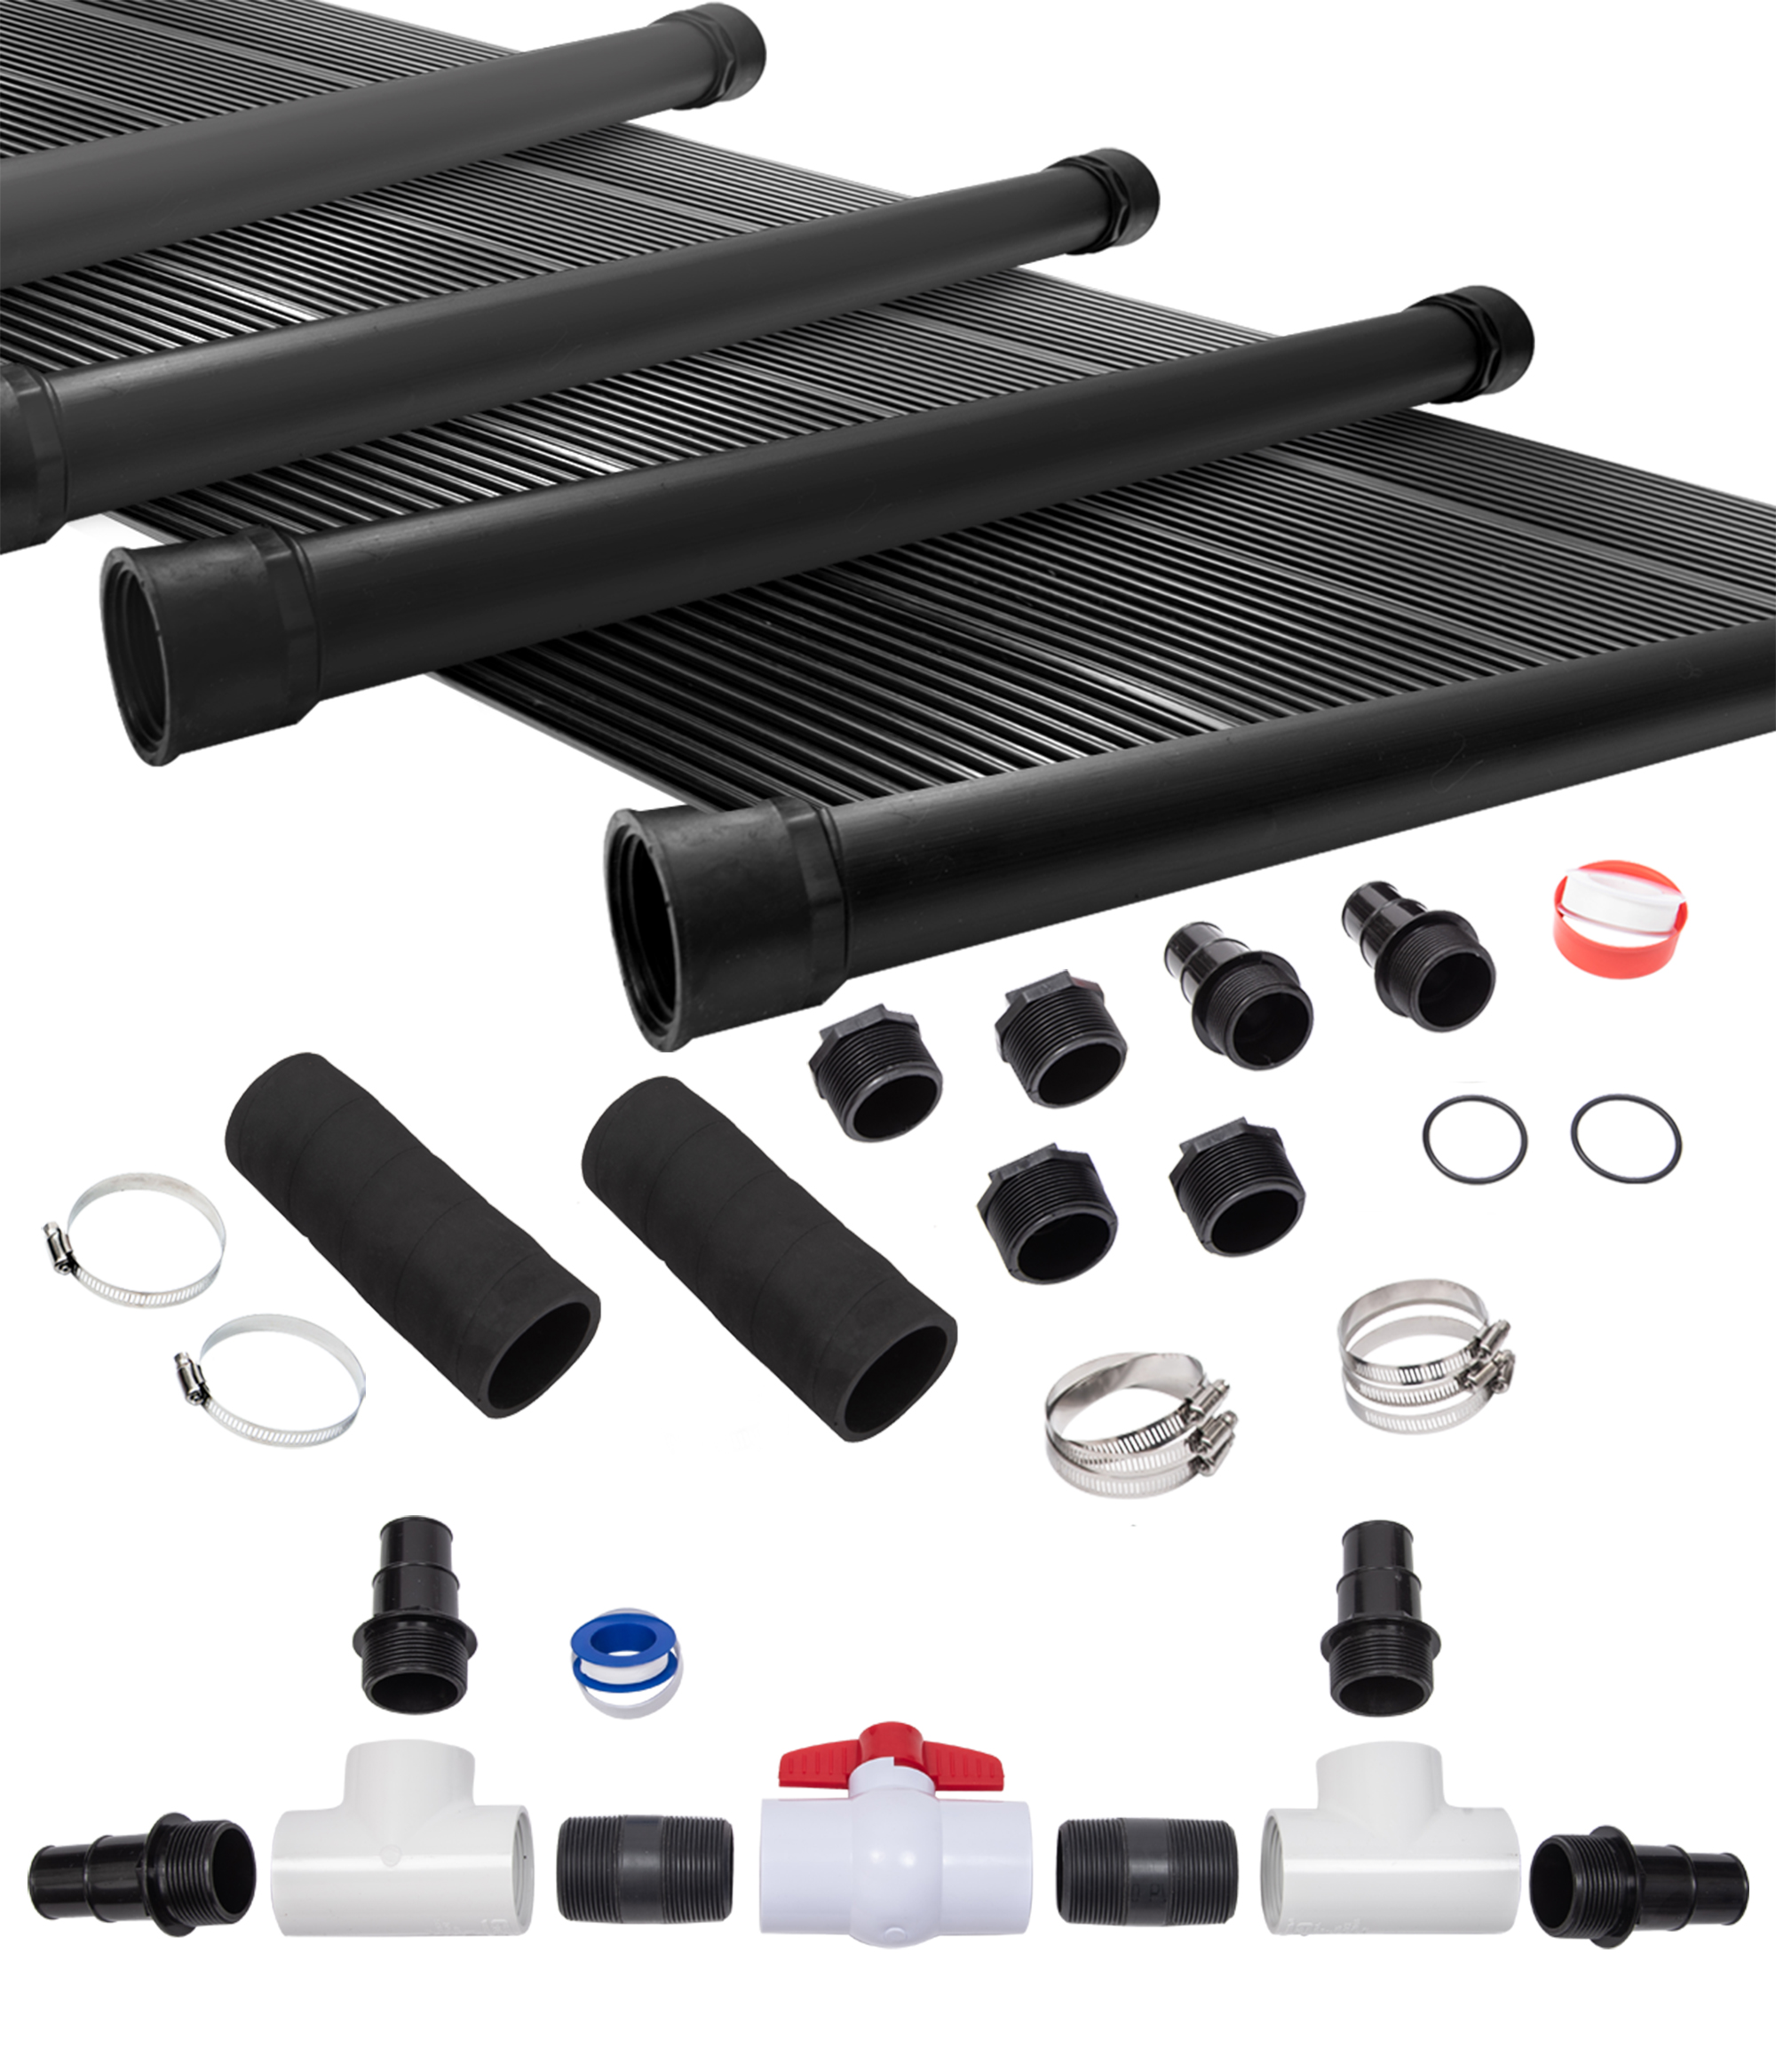 Details about 4-2\'X12\' SunQuest Solar Swimming Pool Heater System with  Diverter Kit